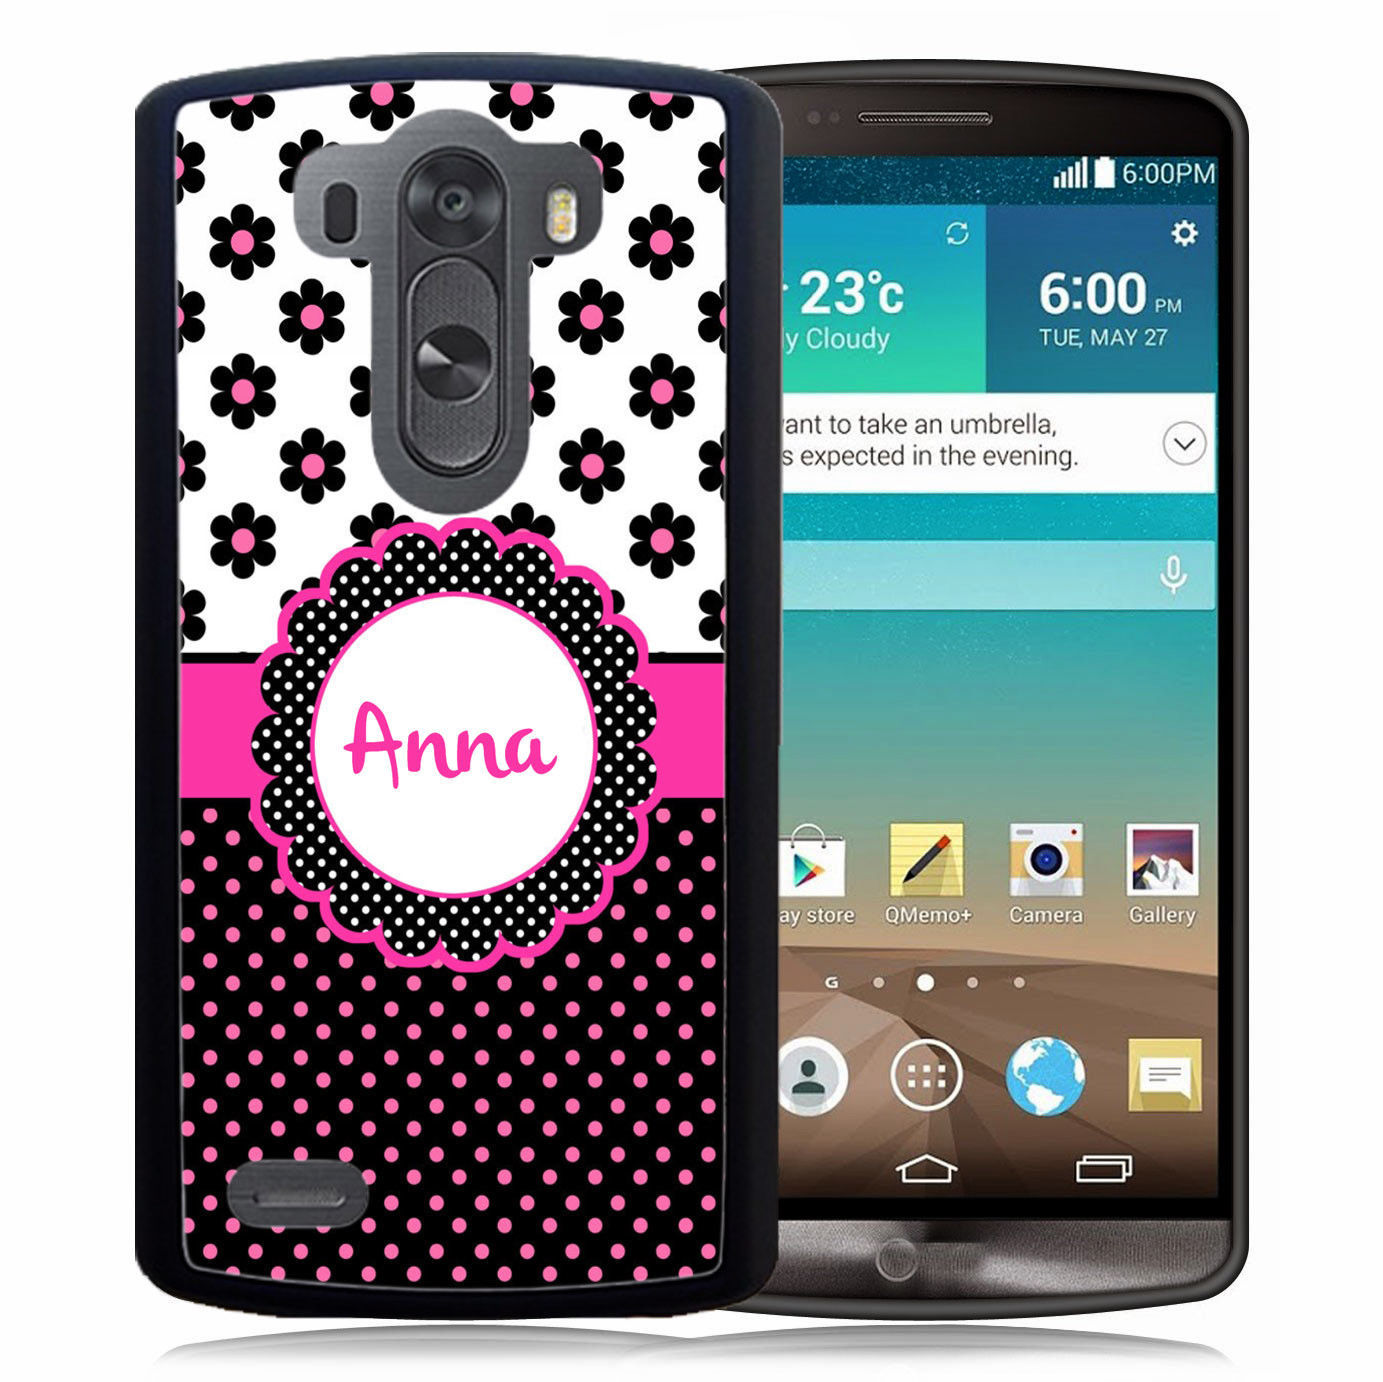 PERSONALIZED RUBBER CASE FOR LG G6 G5 G4 G3 POLKA DOTS FLOWERS PINK BLACK